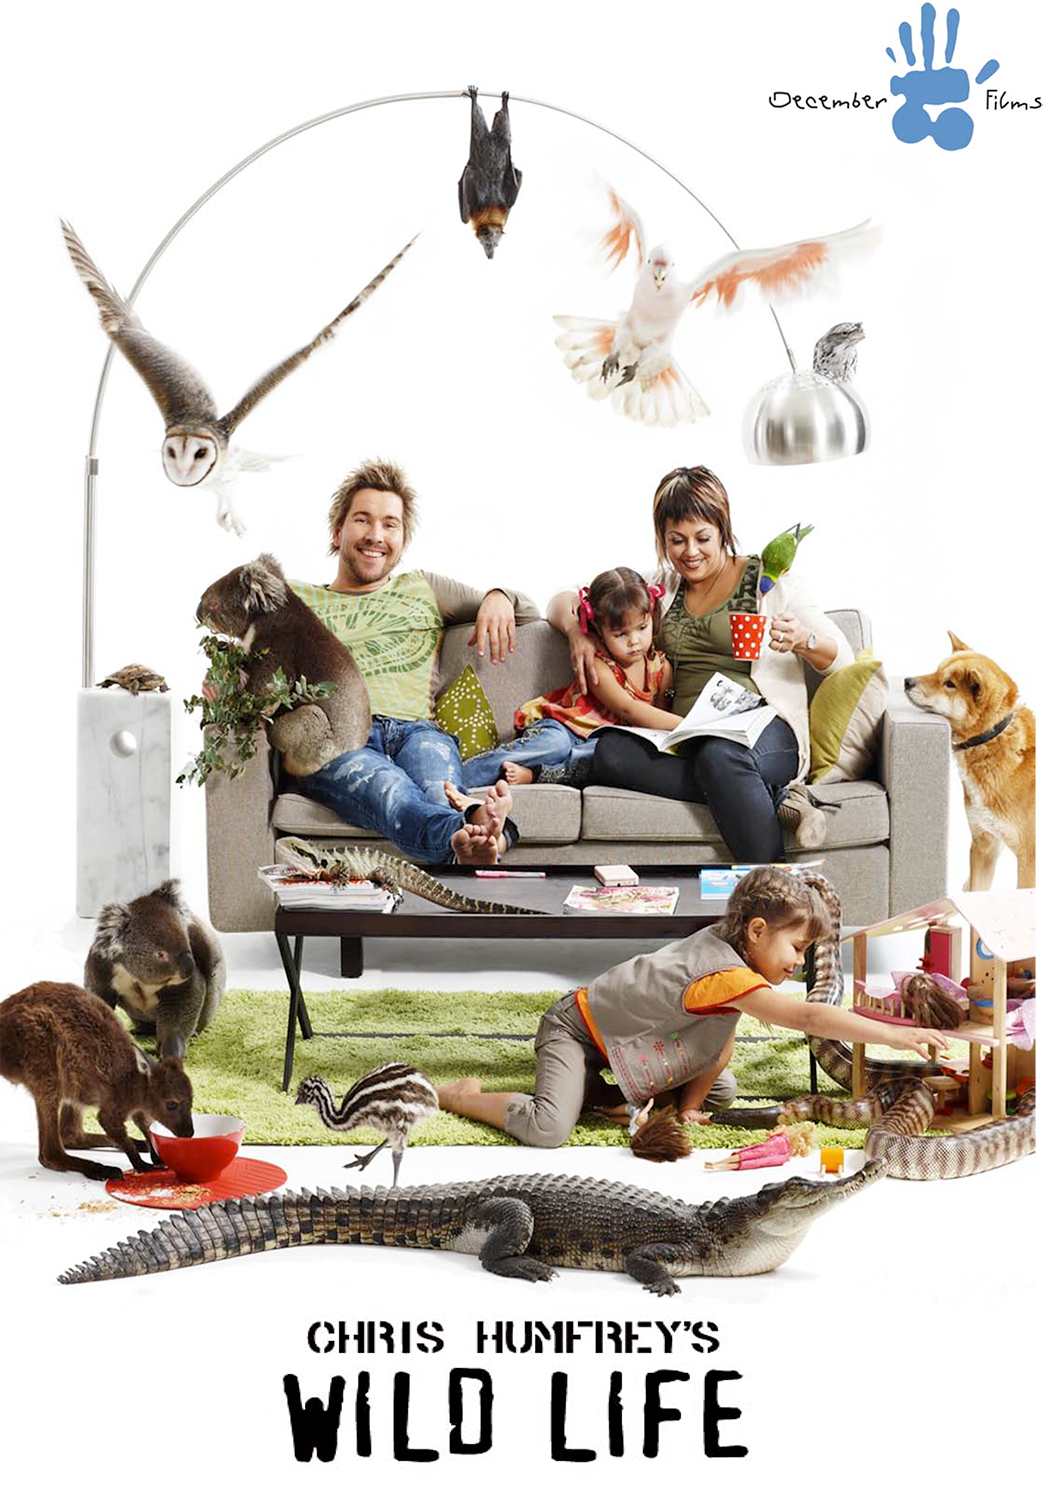 Chris Humfrey's Wild Life - 20113 x 26 minDecember Films/Film VictoriaChris Humfrey is a zoologist who lives with his young family in an idyllic bush haven in country Victoria. The Humfreys also share their home with a few pets – more than 2000 and each one of them needs care and attention 24/7. This isn't your average family home. It's a private zoo where human and animal sagas unfold on a daily basis. Chris and his wife Nicole work around the clockto keep their very extended family happy and healthy and manage their enthusiastic crew of Gen Y zookeepers/presenters. Follow Chris in this chaotic, animal-crazy series that captures the drama, the danger, the animal antics and the sheer exhilaration of Chris Humfrey's Wild Life.